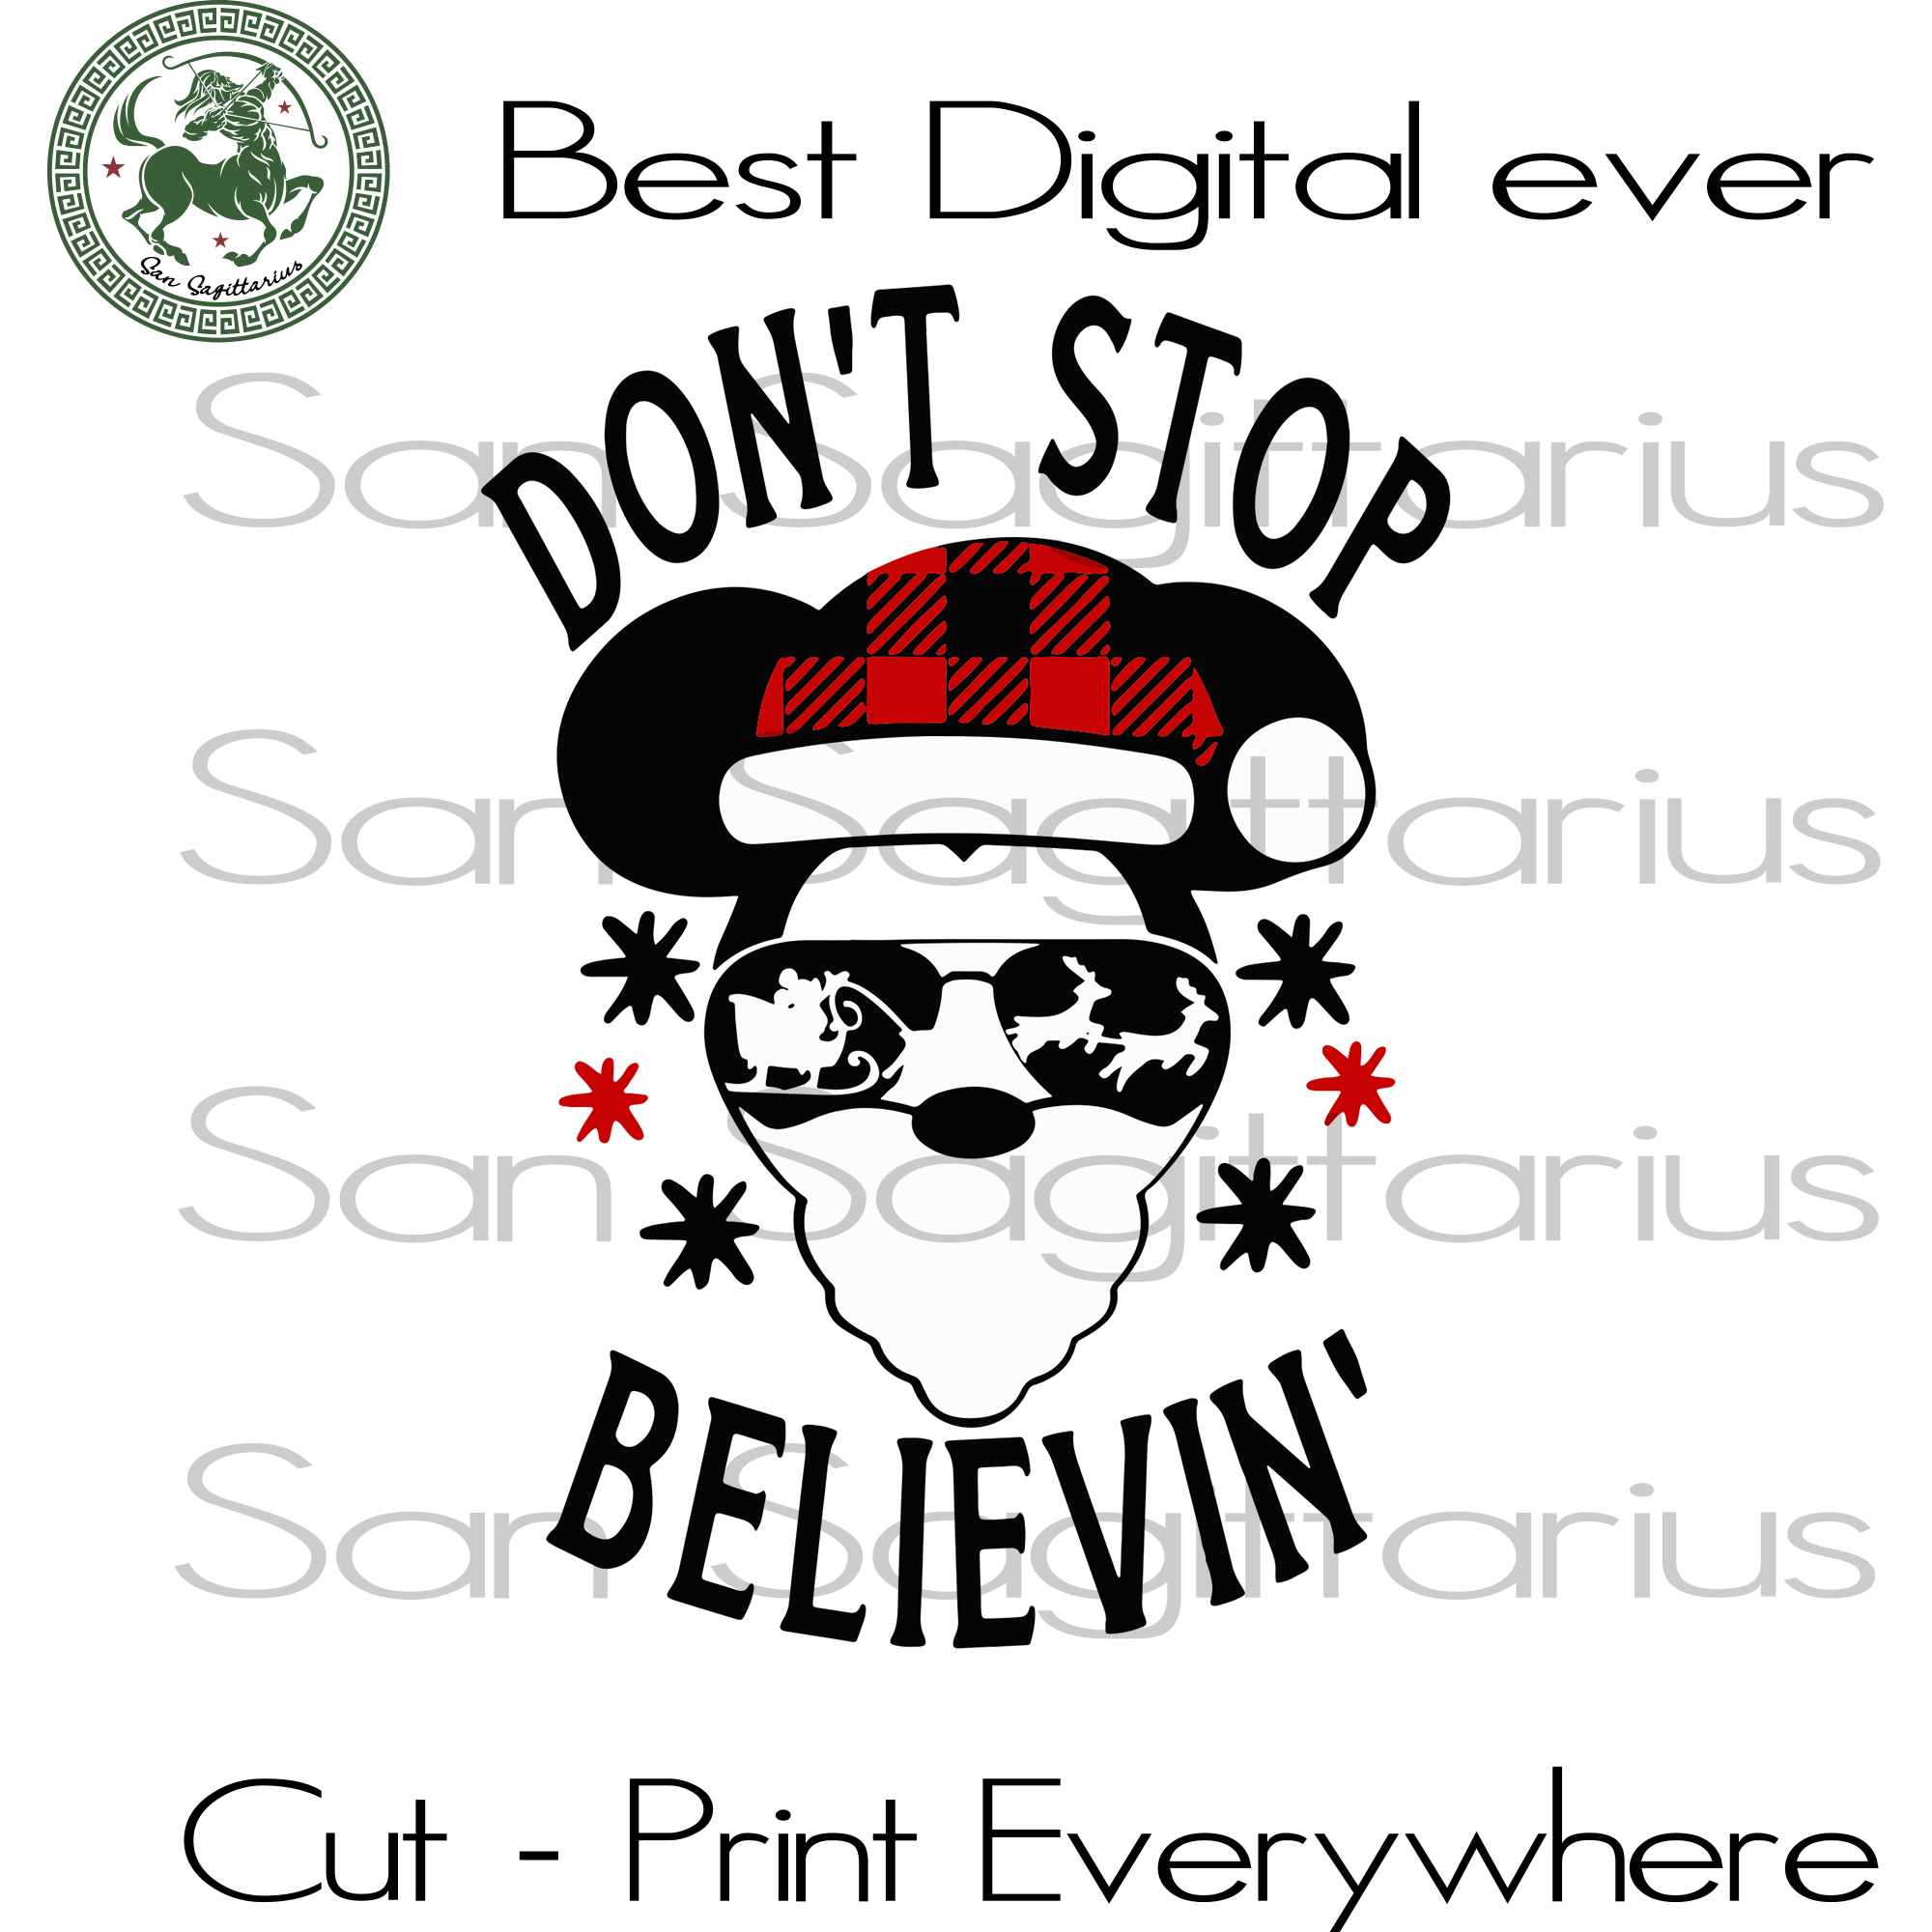 Don't Stop Believin', Christmas Svg, Christmas Gifts, Santa Claus, Merry Christmas, Christmas Holiday, Christmas Party, Funny Christmas, Christmas Tree,  Disney Christmas, Xmas Gift, Chri